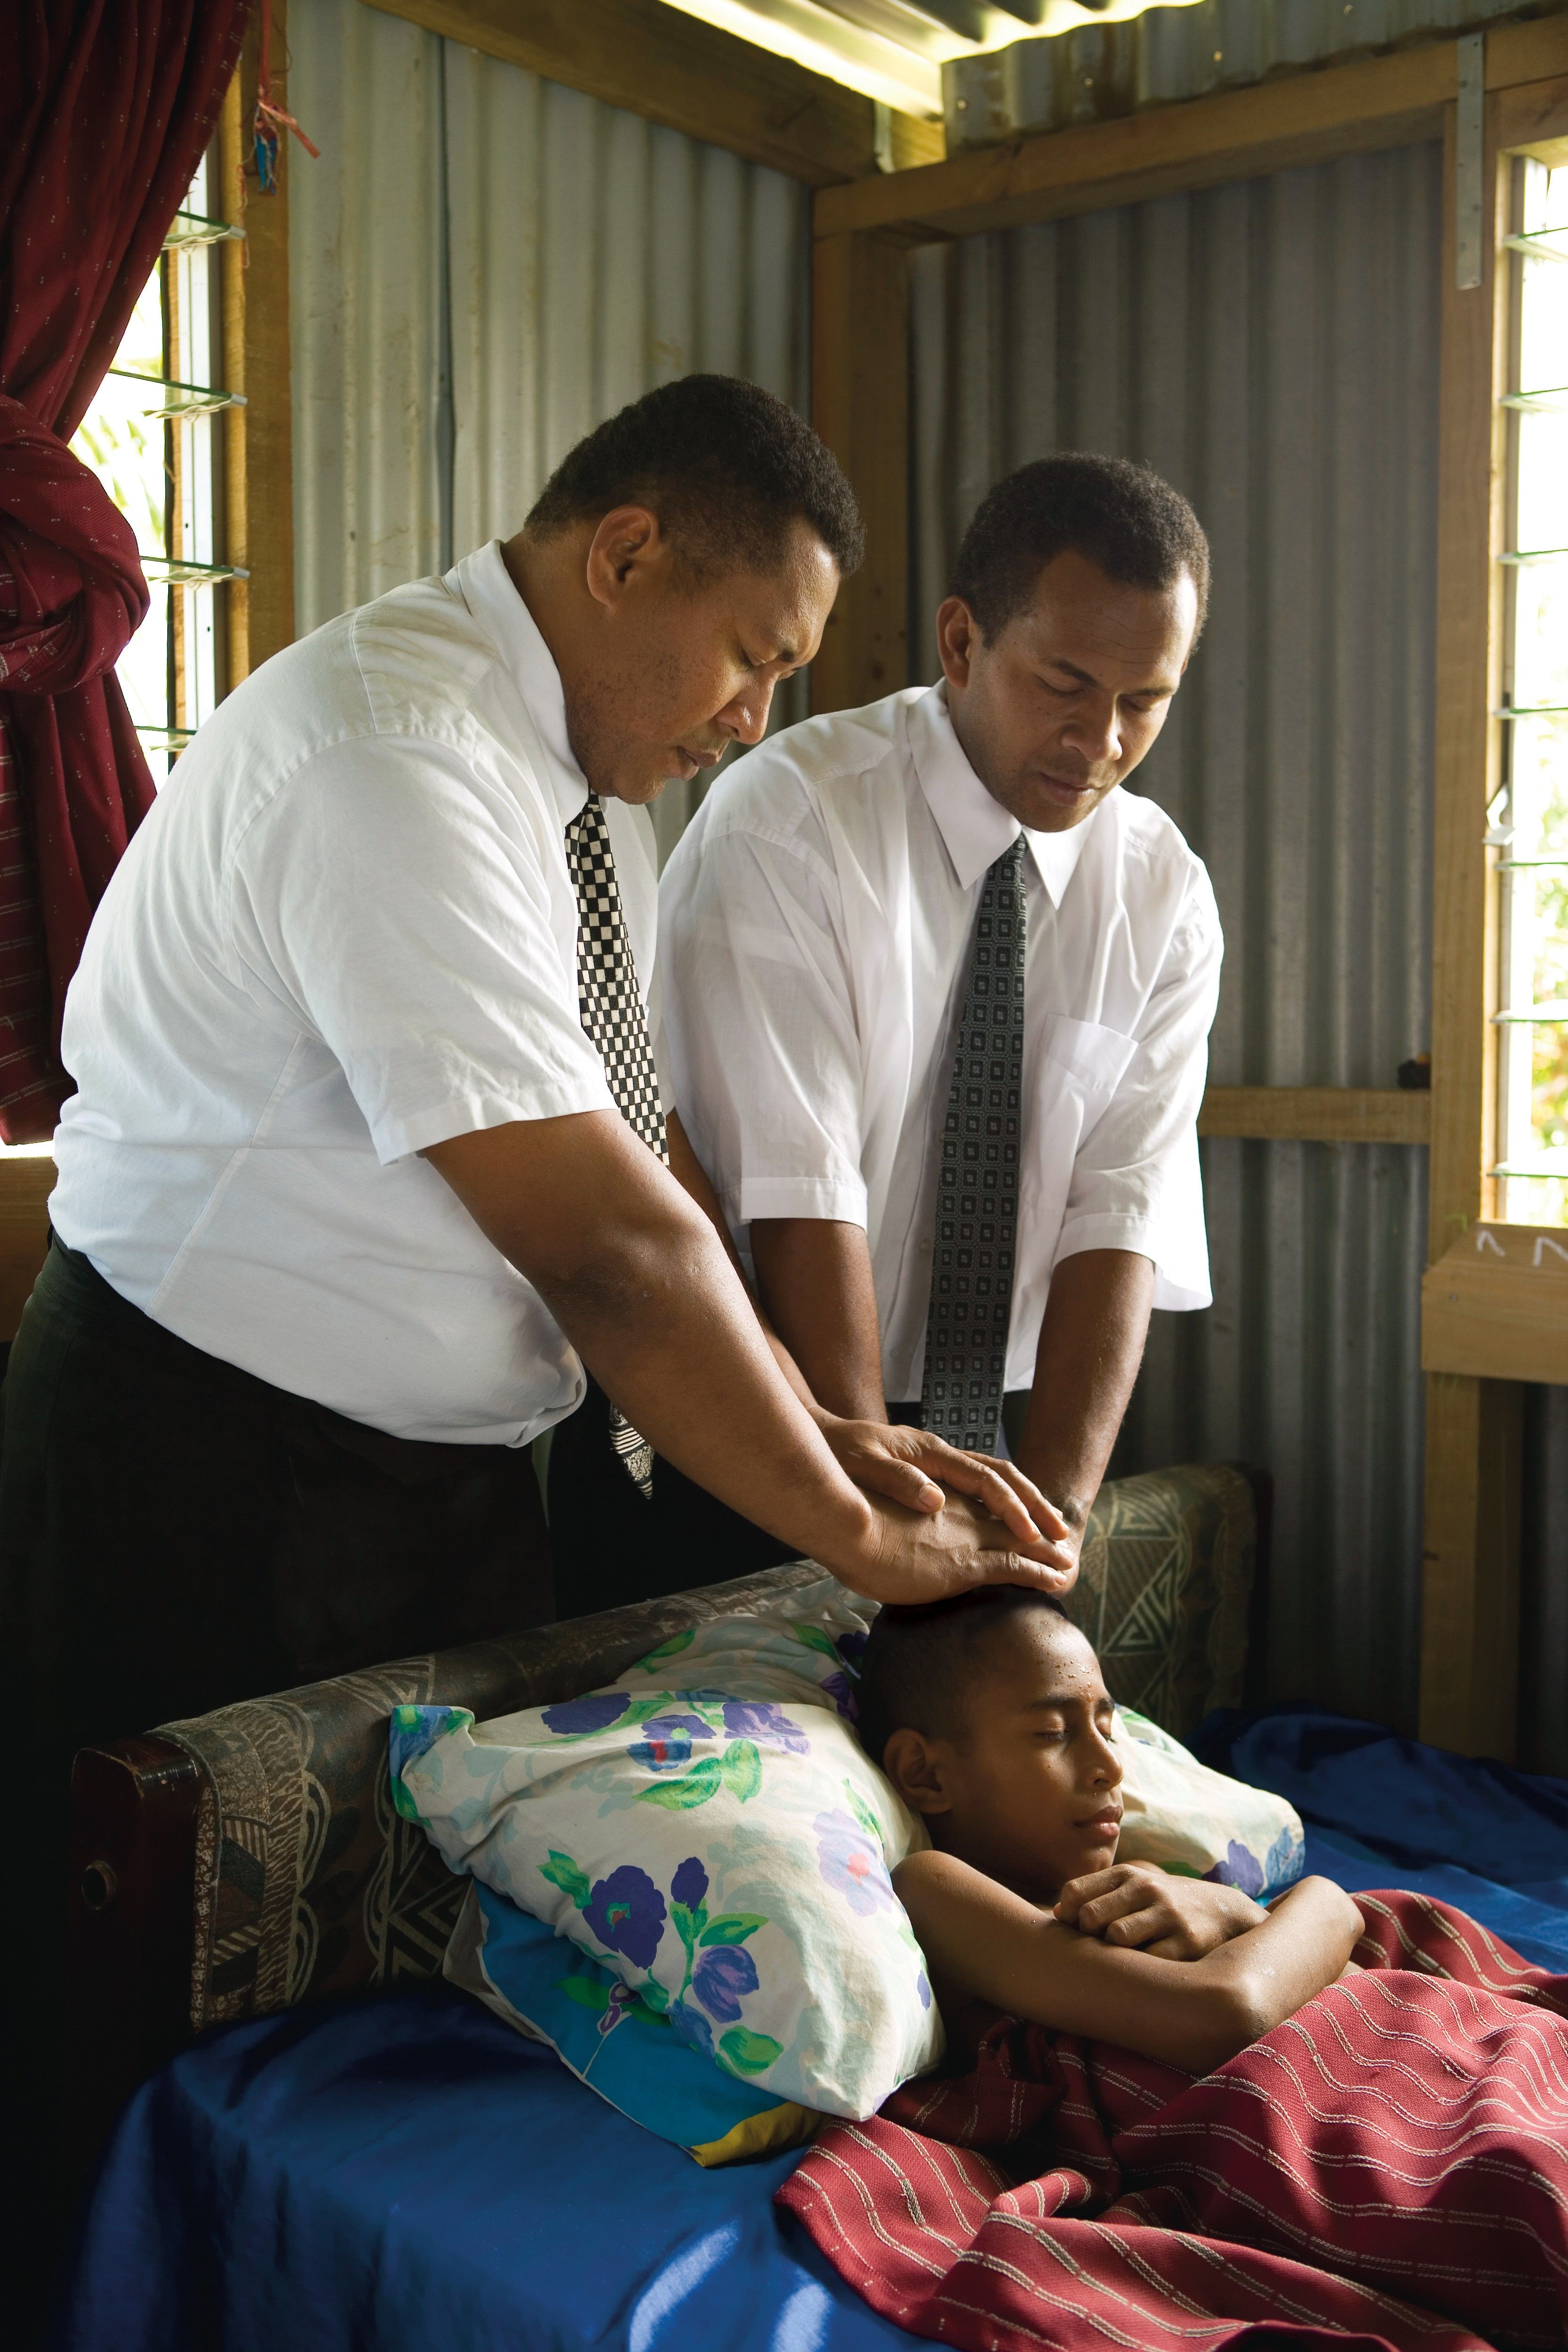 Two men give a priesthood blessing to a young boy who is sick.